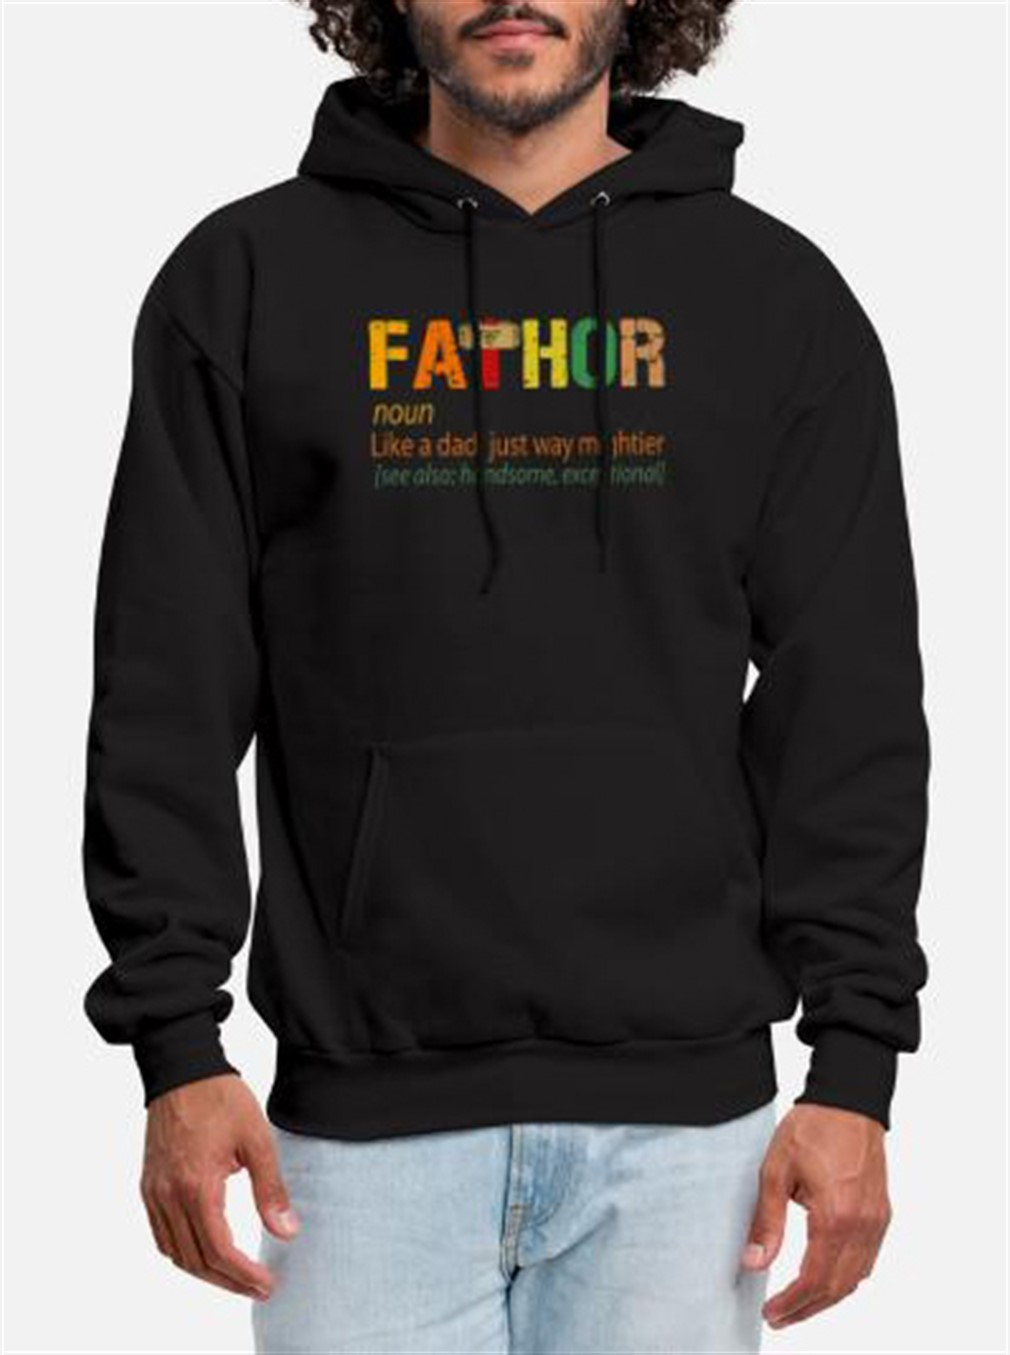 Fathor Like Dad Just Way Mightier Hoodie